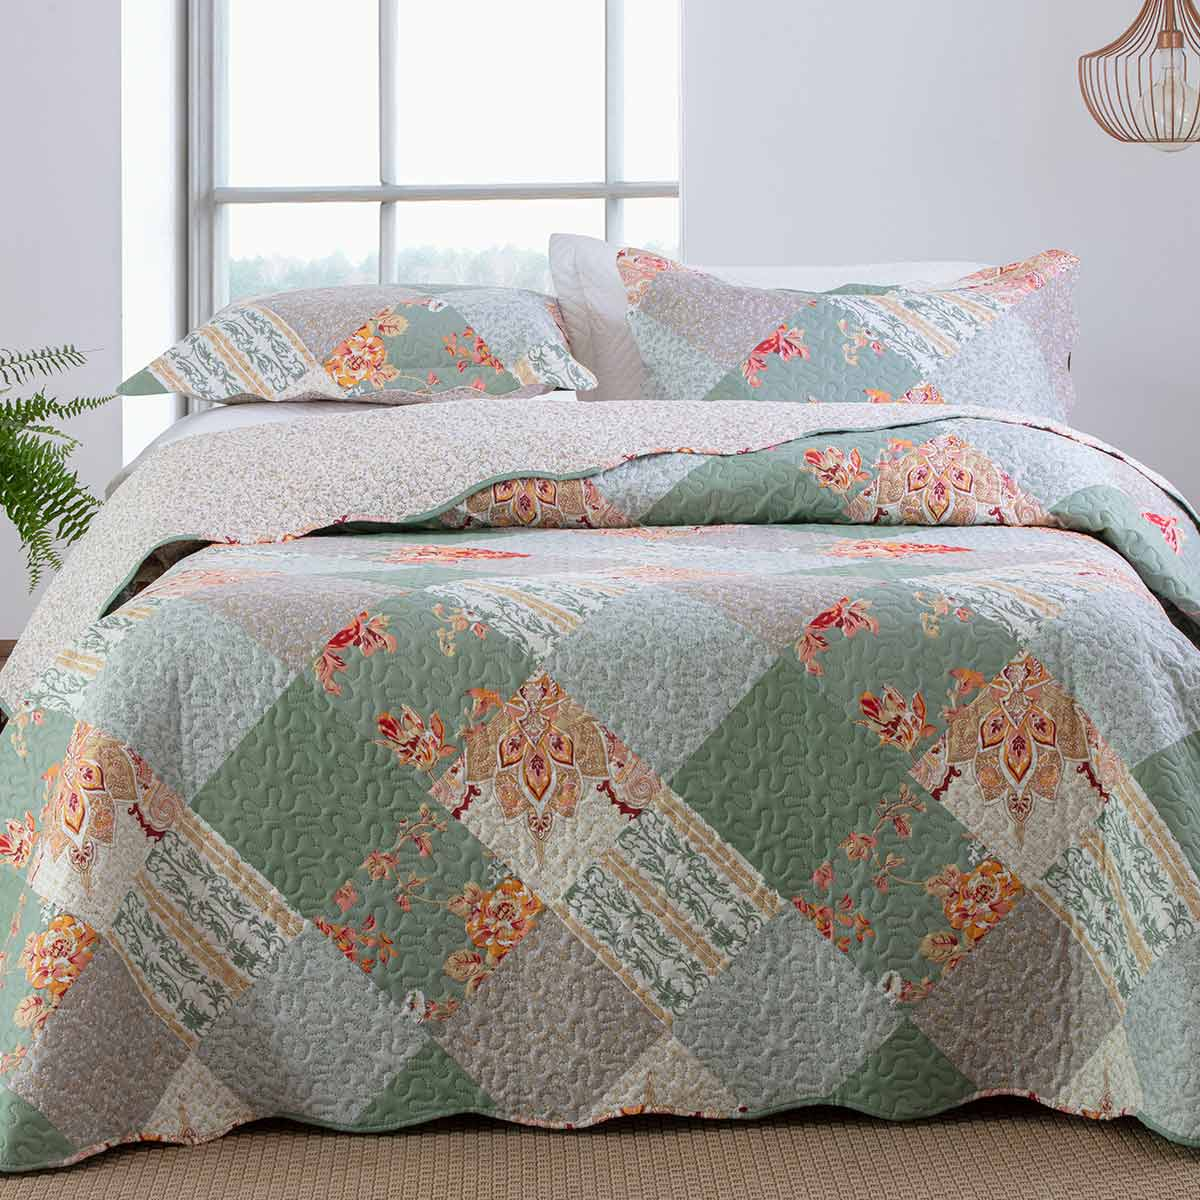 Cobreleito Patchwork Ultra Queen 3Pcs Turim 3